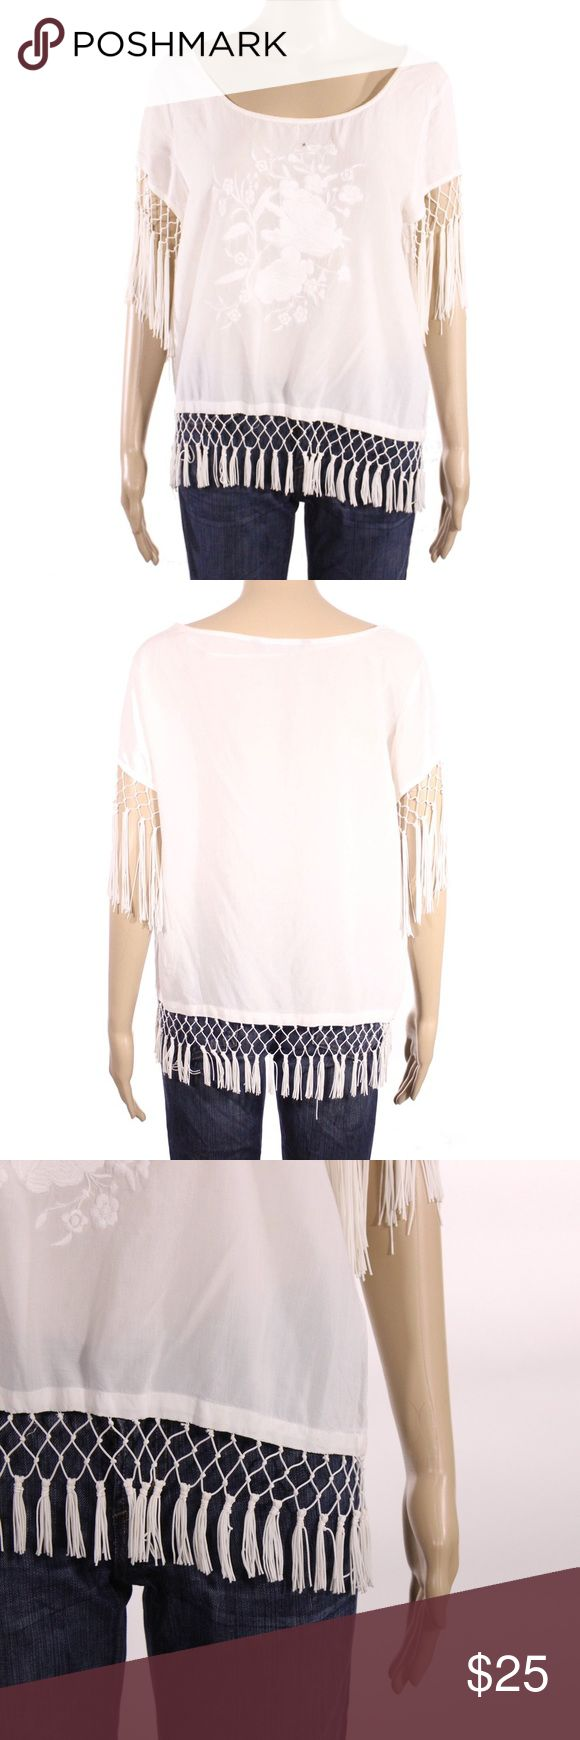 Zara Short Sleeve Floral Decal Fringe Blouse Zara short sleeve semi sheer blouse with floral decal on front and fringed hems. Small hole near the front bust, shown in pictures.  Fits true to size.  Shown on a size 4/6 mannequin.  In gently used condition, no flaws.  Measurements available upon request.  All orders shipped same or next business day! Zara Tops